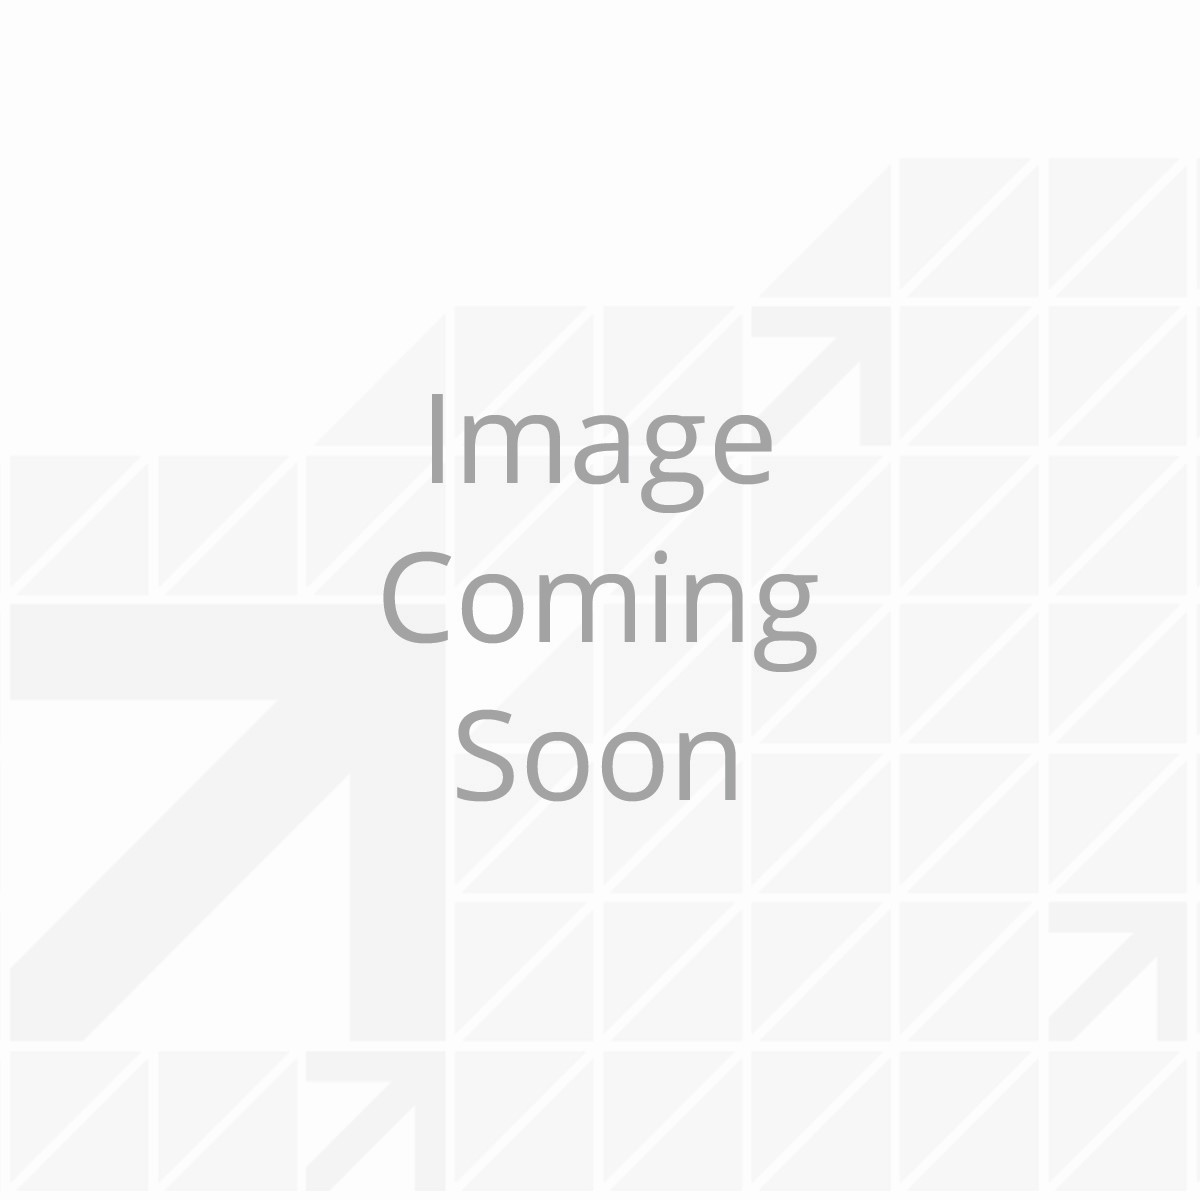 Lippert on Youtube